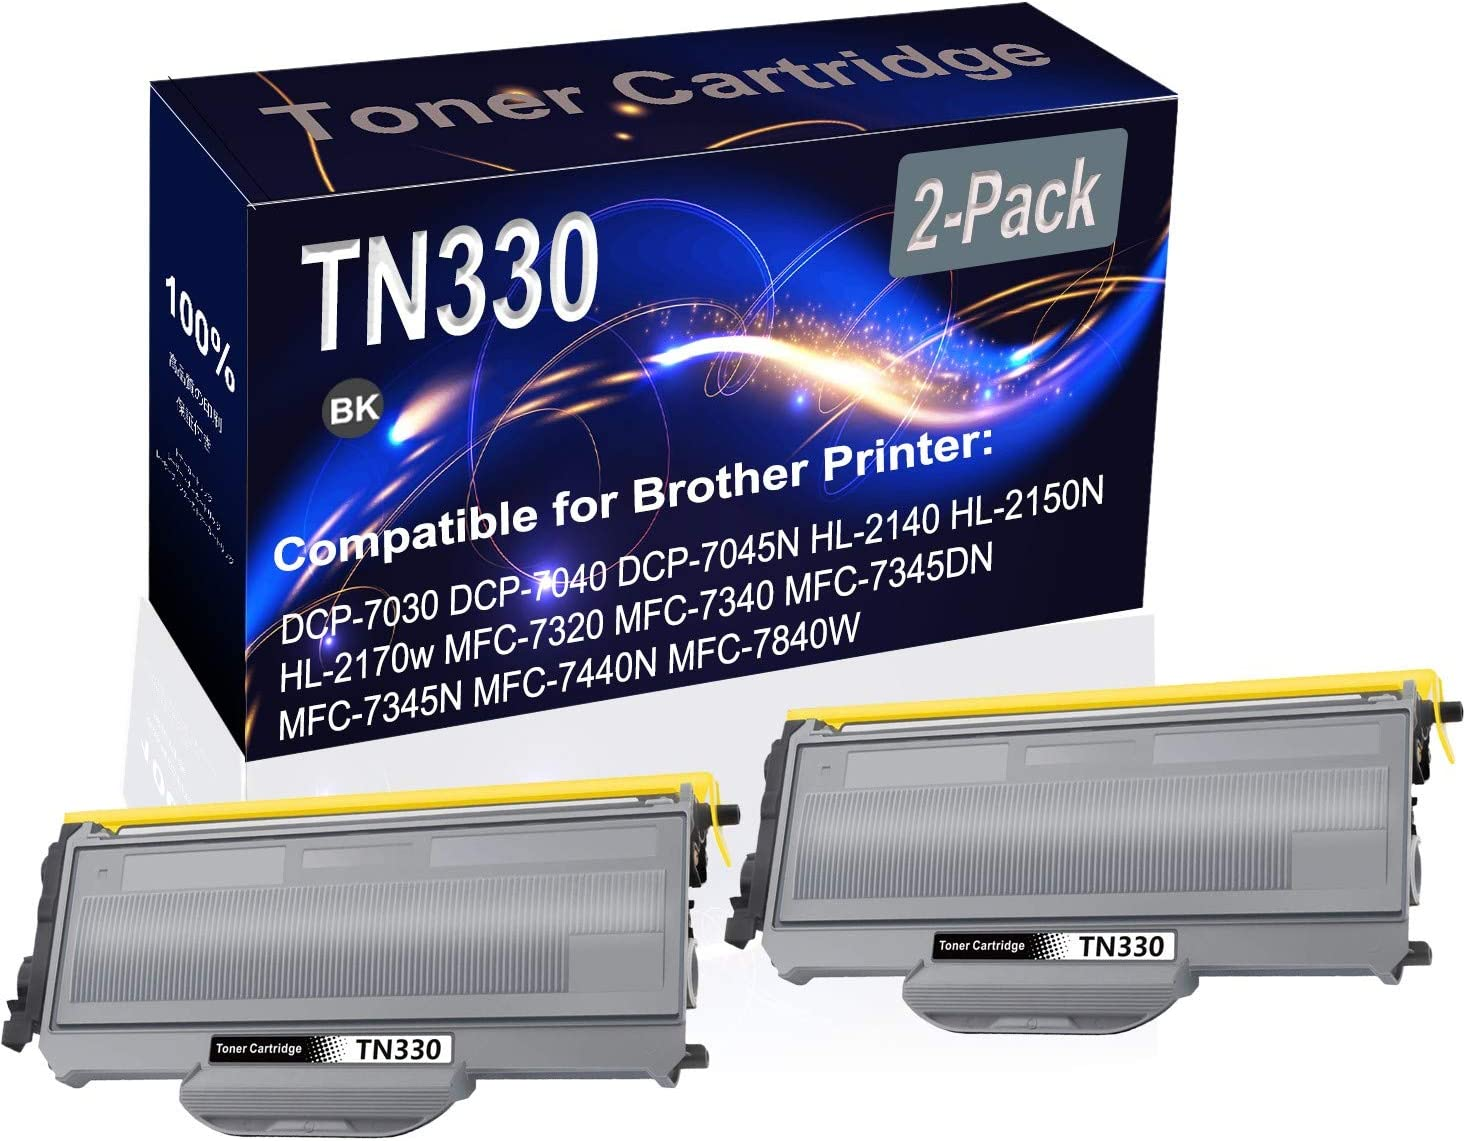 2-Pack (Black) Compatible TN330 (TN-330) Printer Toner Cartridge (High Capacity) fit for Brother DCP-7030 DCP-7040 DCP-7045N HL-2140 HL-2150N HL-2170w MFC-7320 MFC-7340 Printer